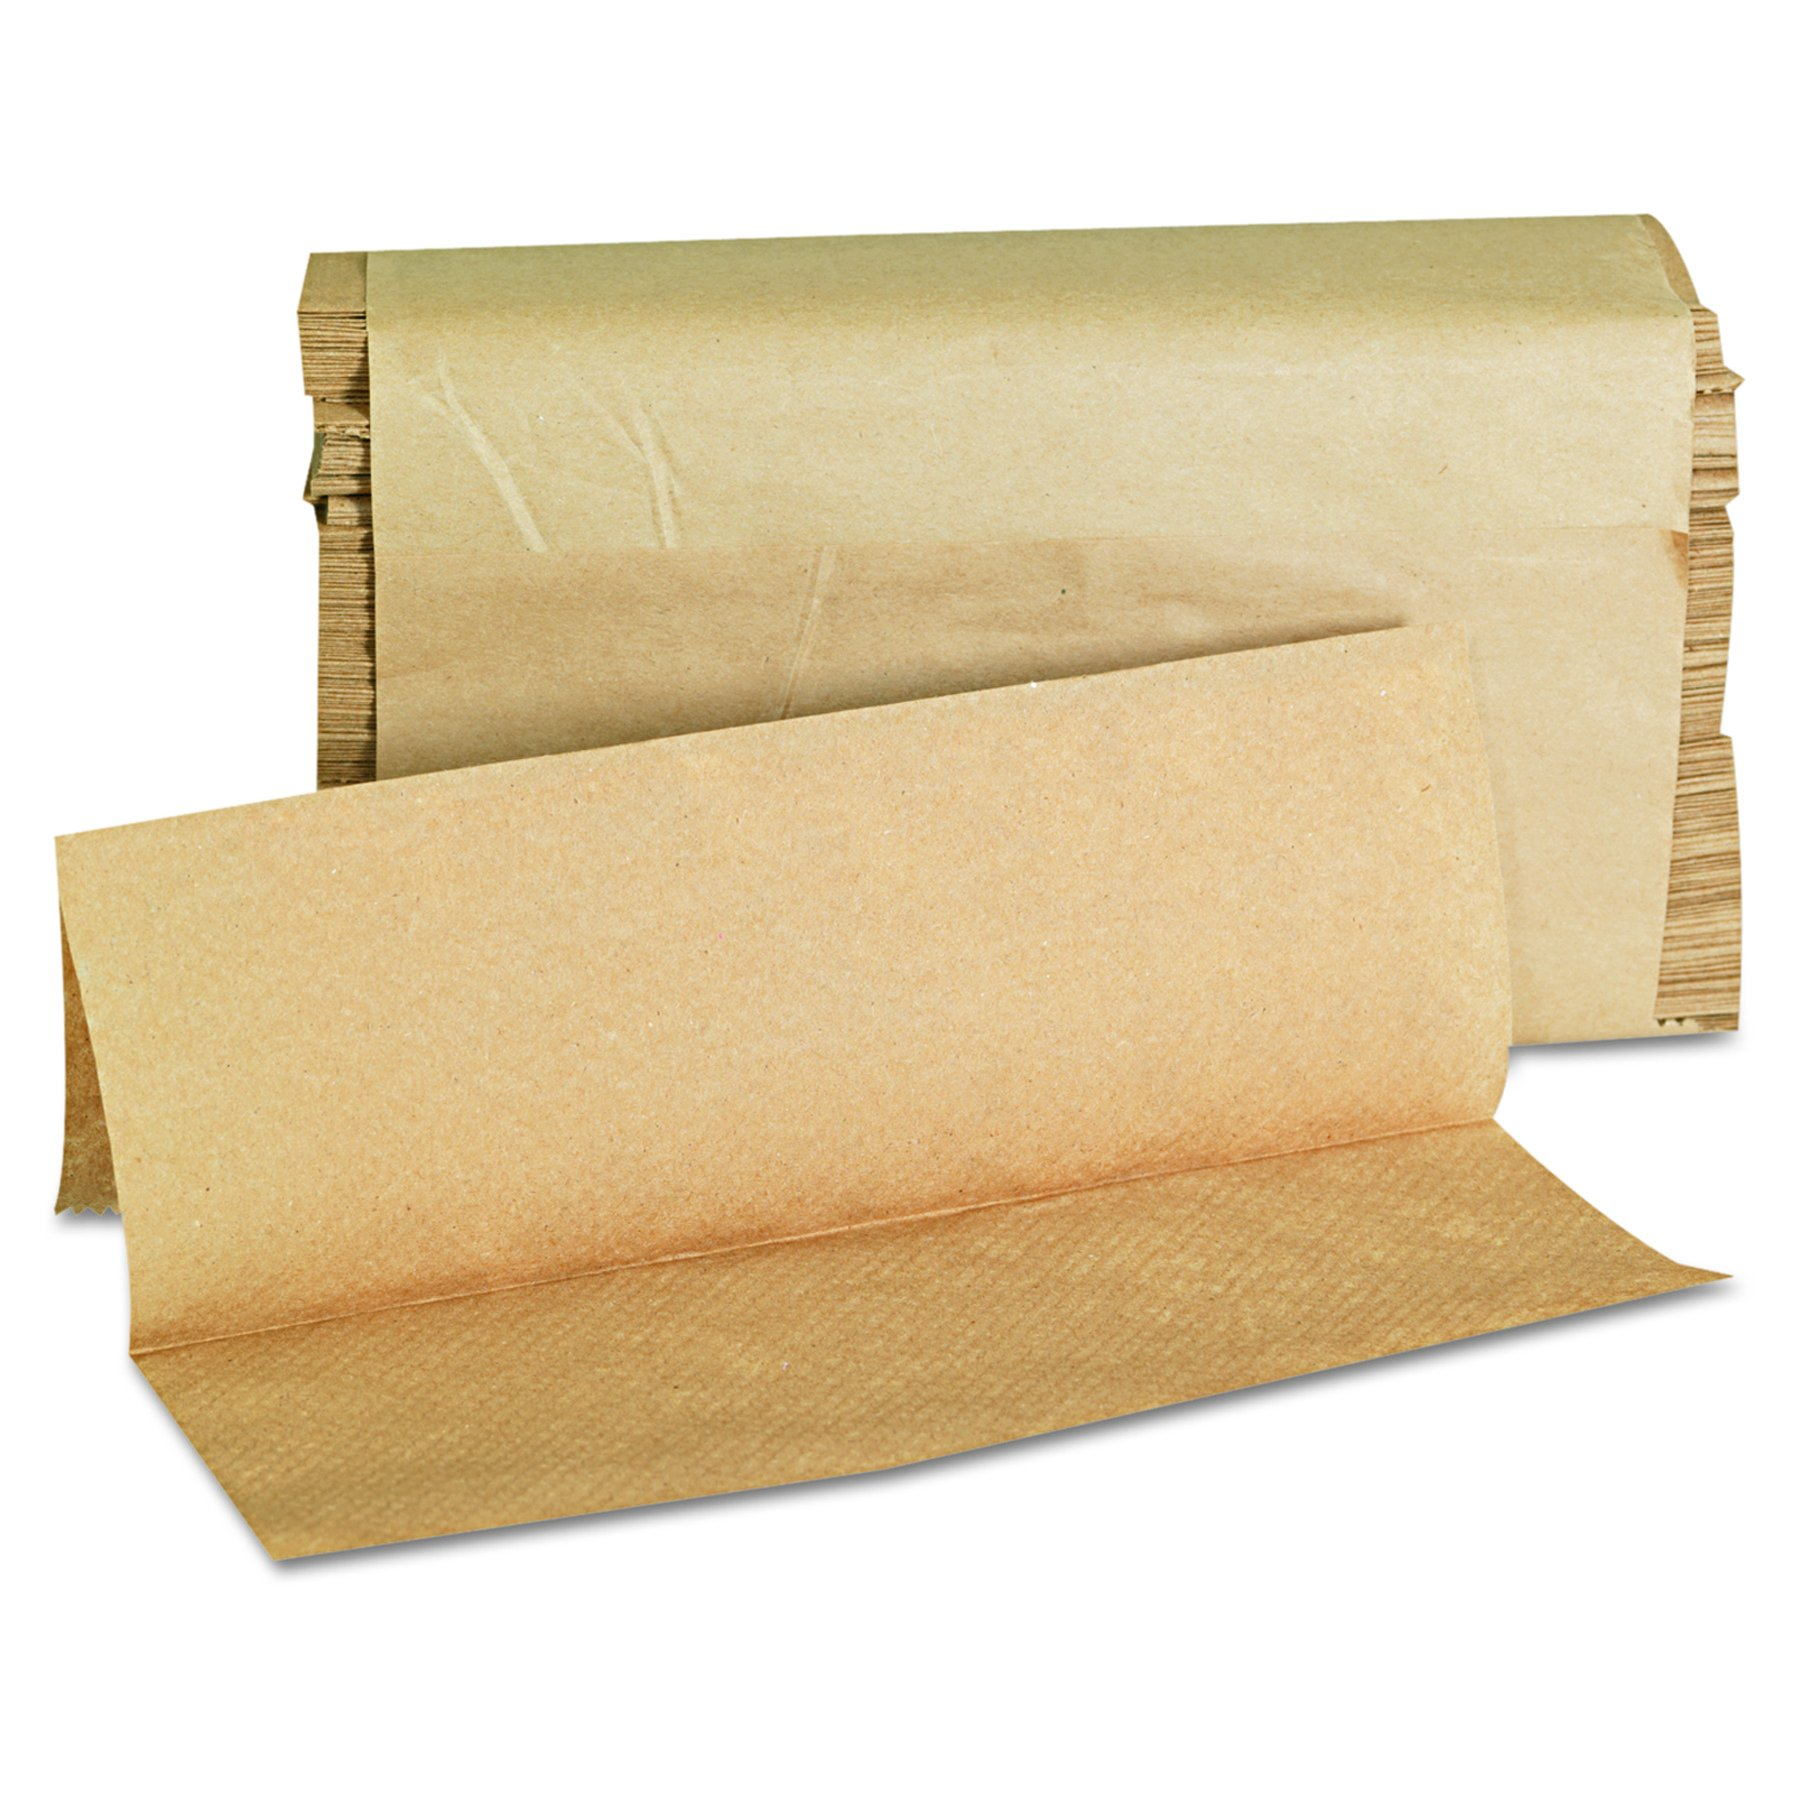 GEN 1508 Folded Paper Towels, Multifold, 9 x 9 9/20, Natural, 250 Towels per Pack (Case of 16 Packs)